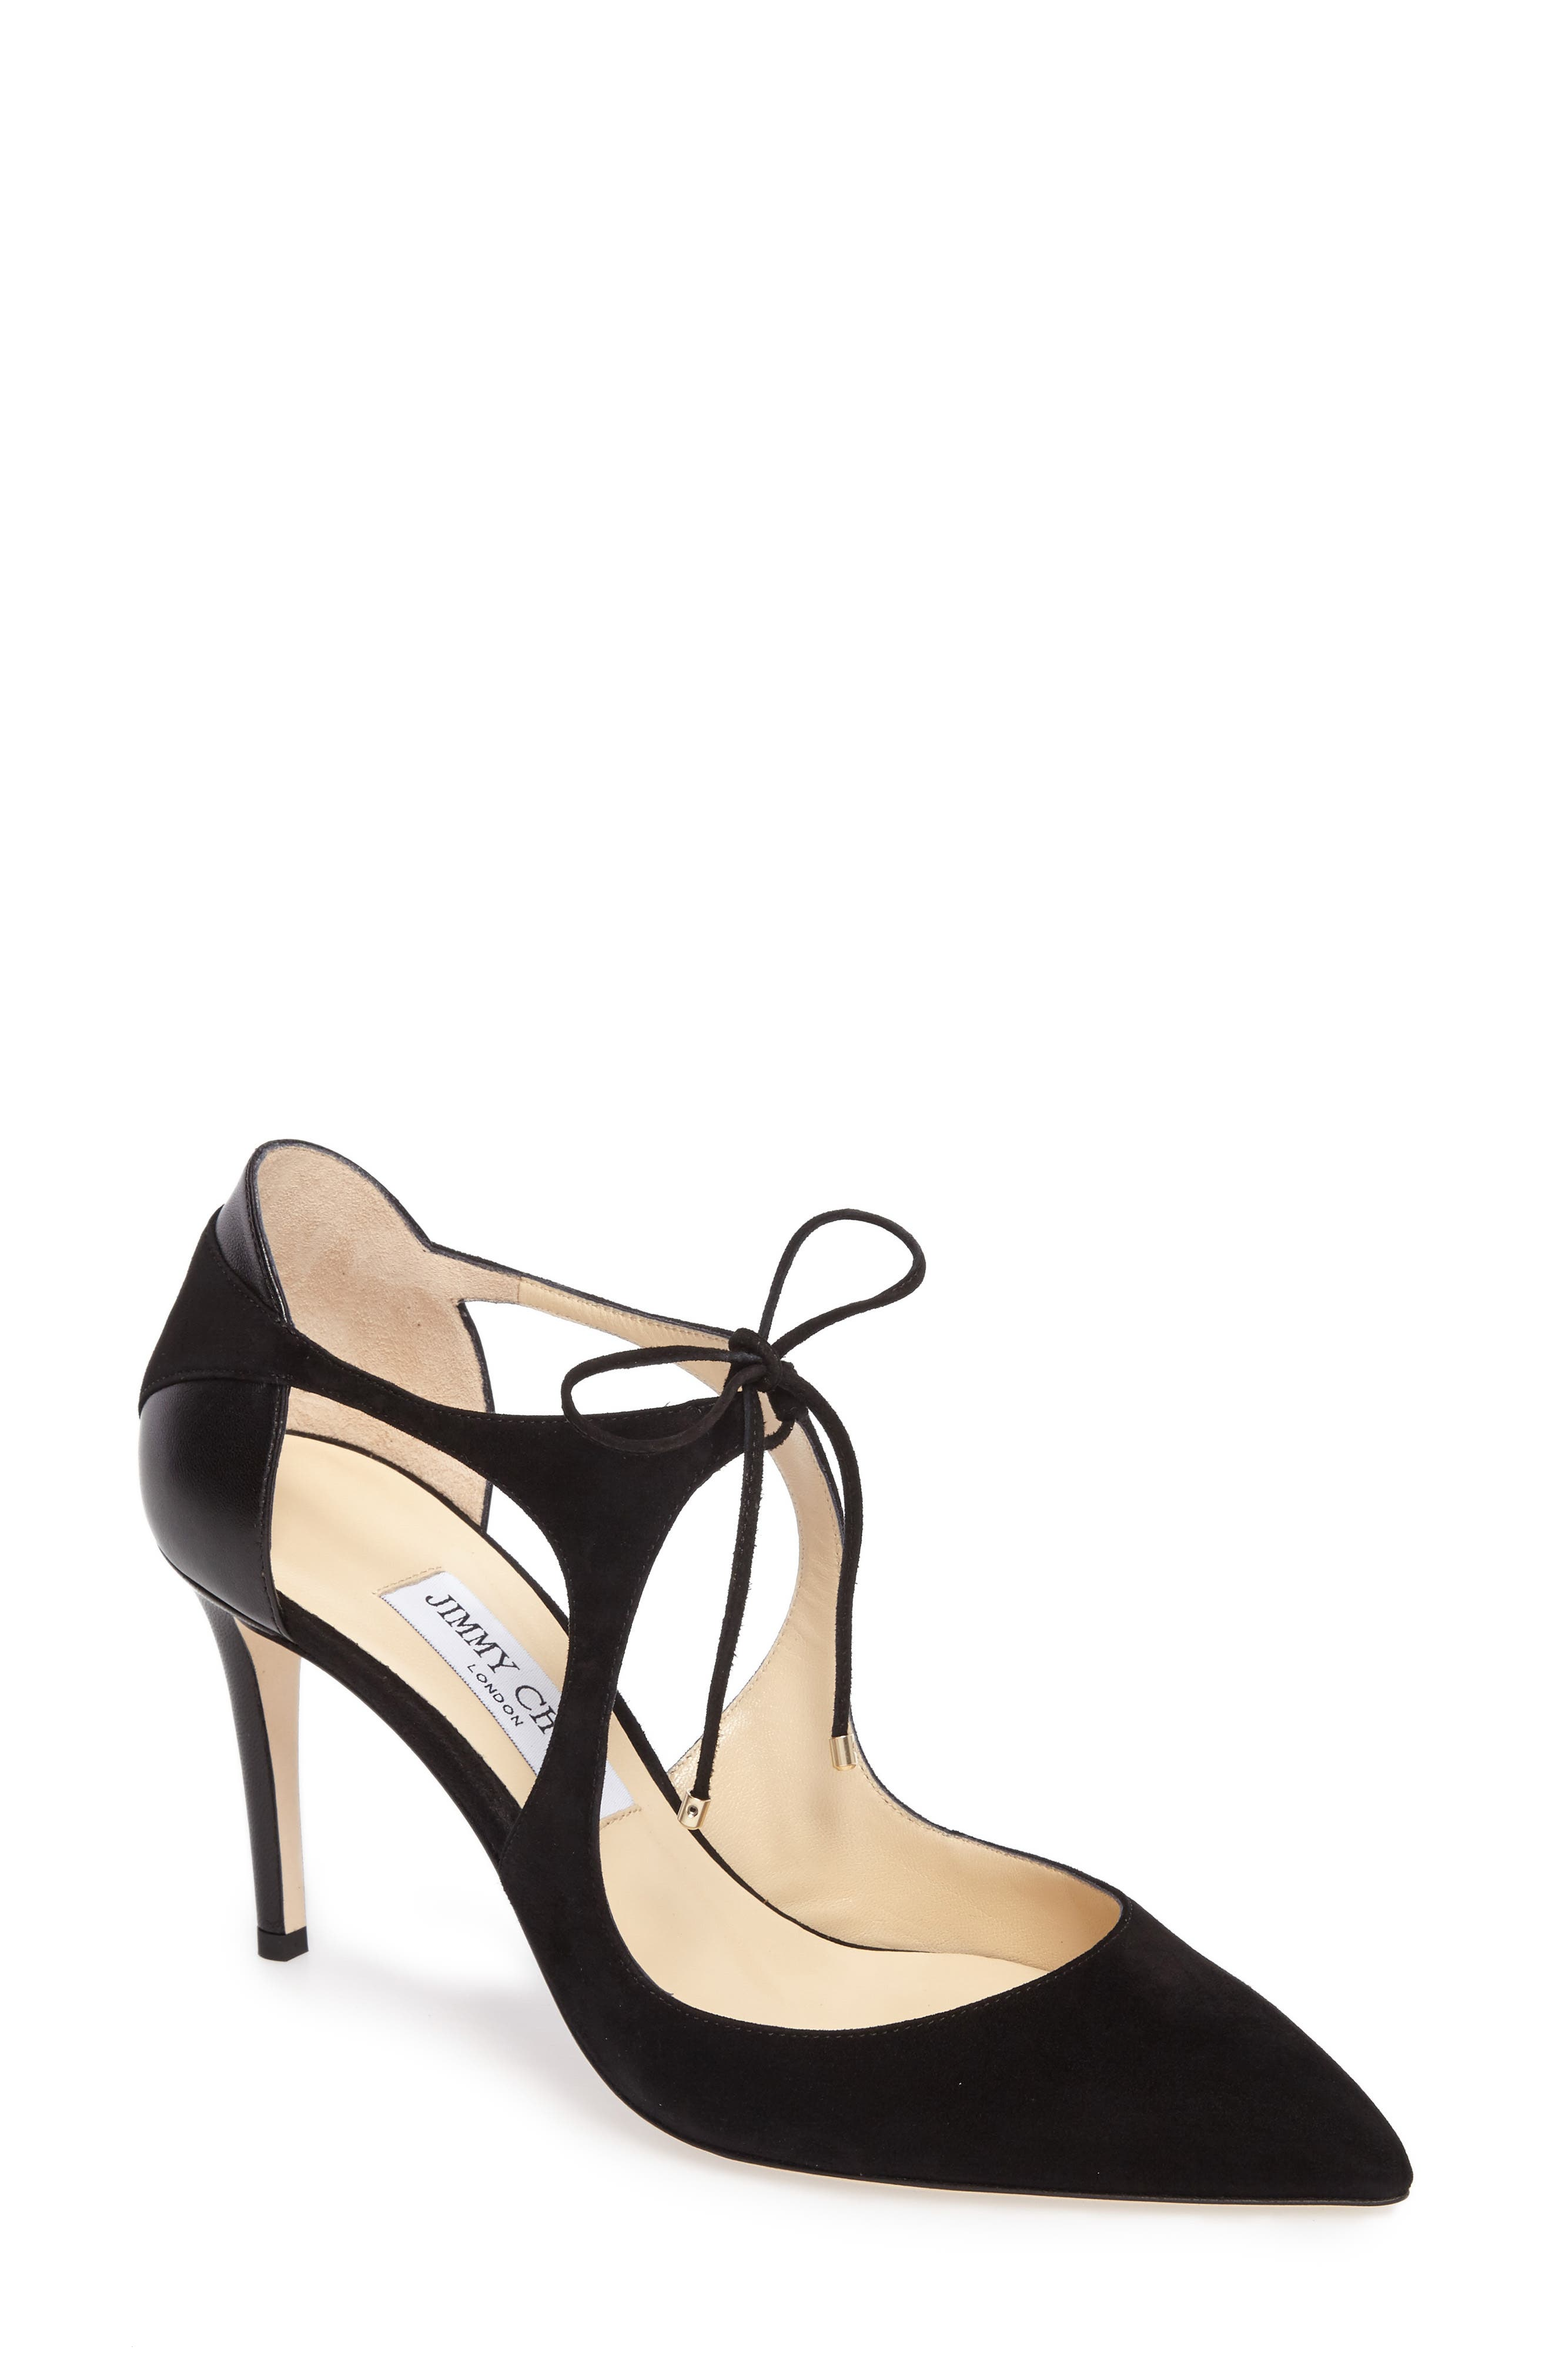 Alternate Image 1 Selected - Jimmy Choo Vanessa Lace-Up Pump (Women)